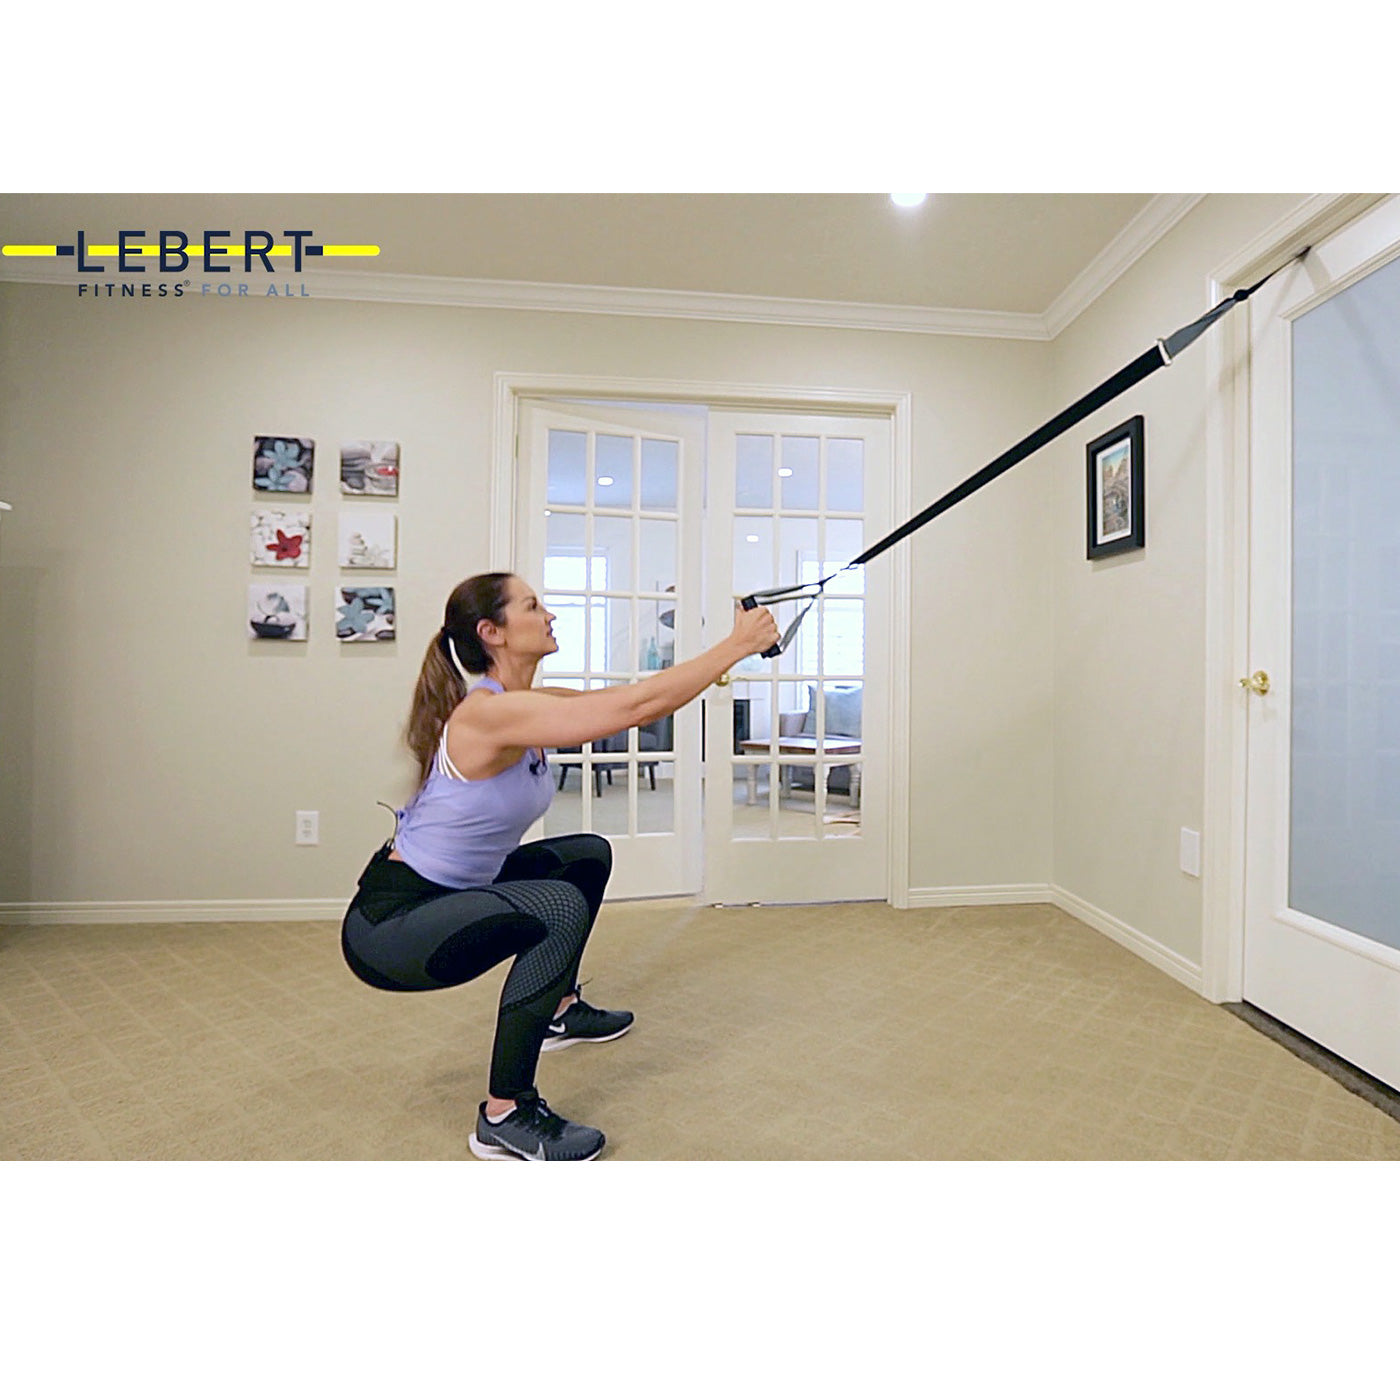 get stronger, and improve your VO2 max with the Lebert HIIT System!